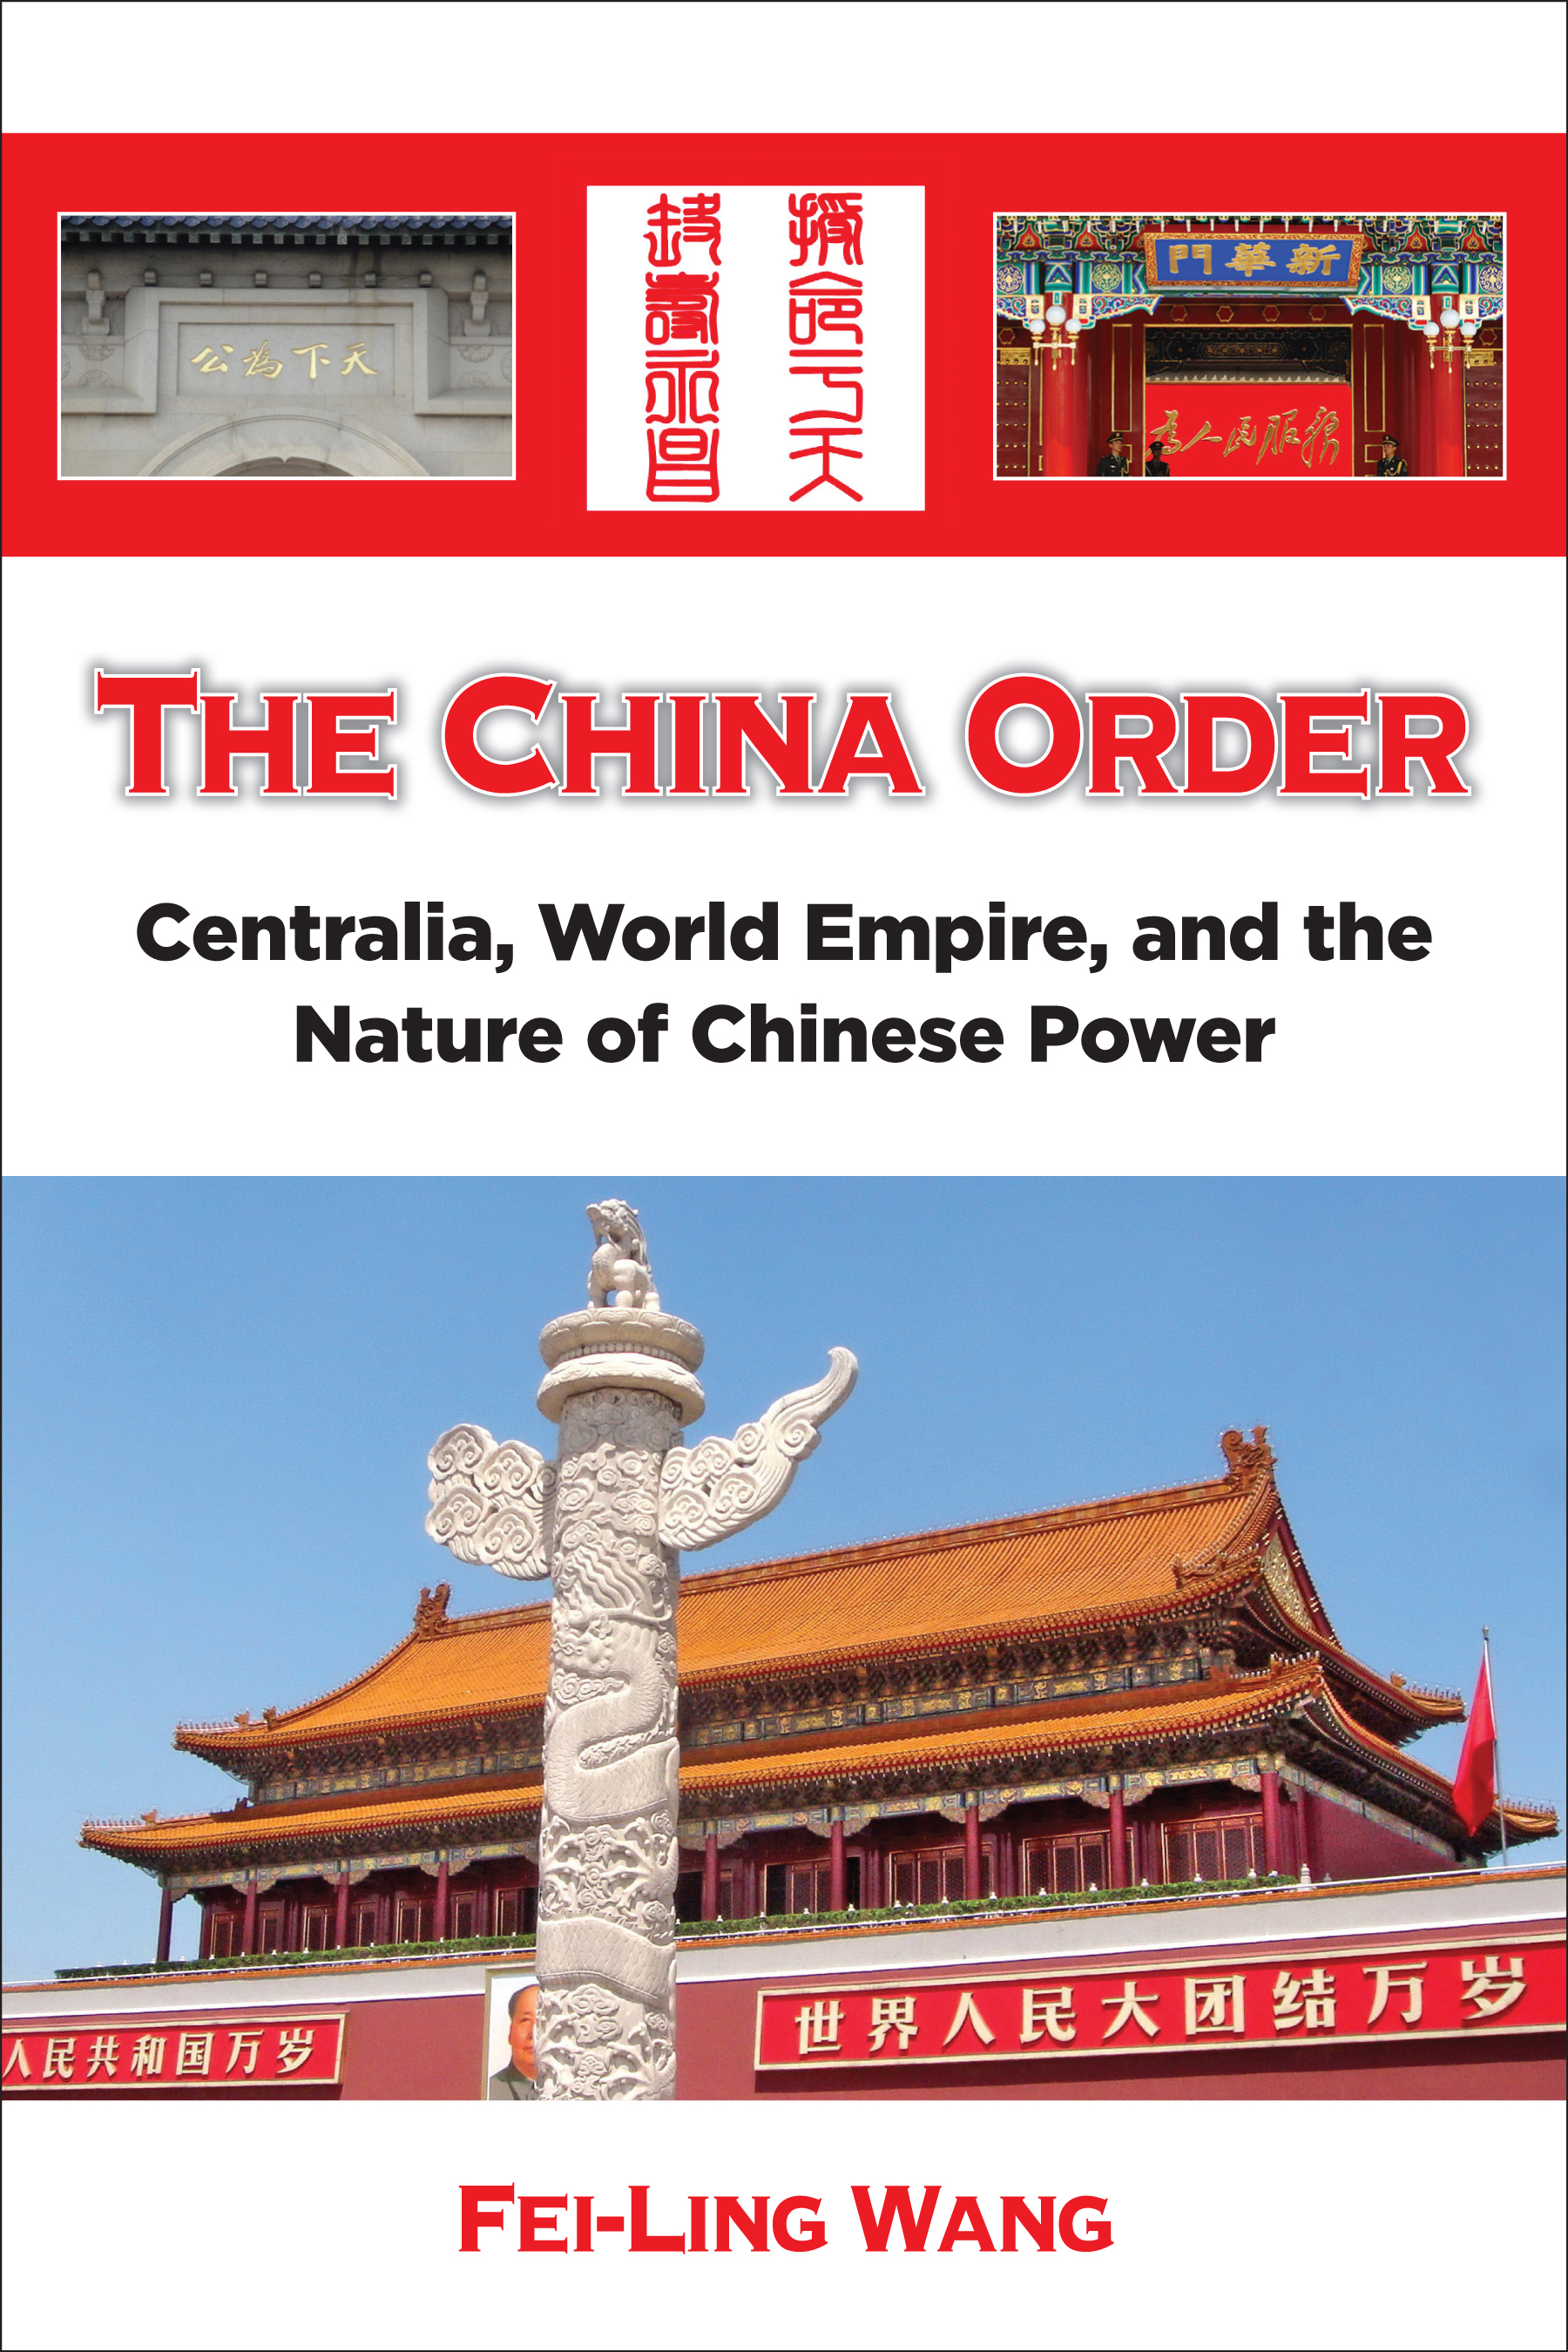 The China Order By Dr. Fei-Ling Wang To Be Published In August